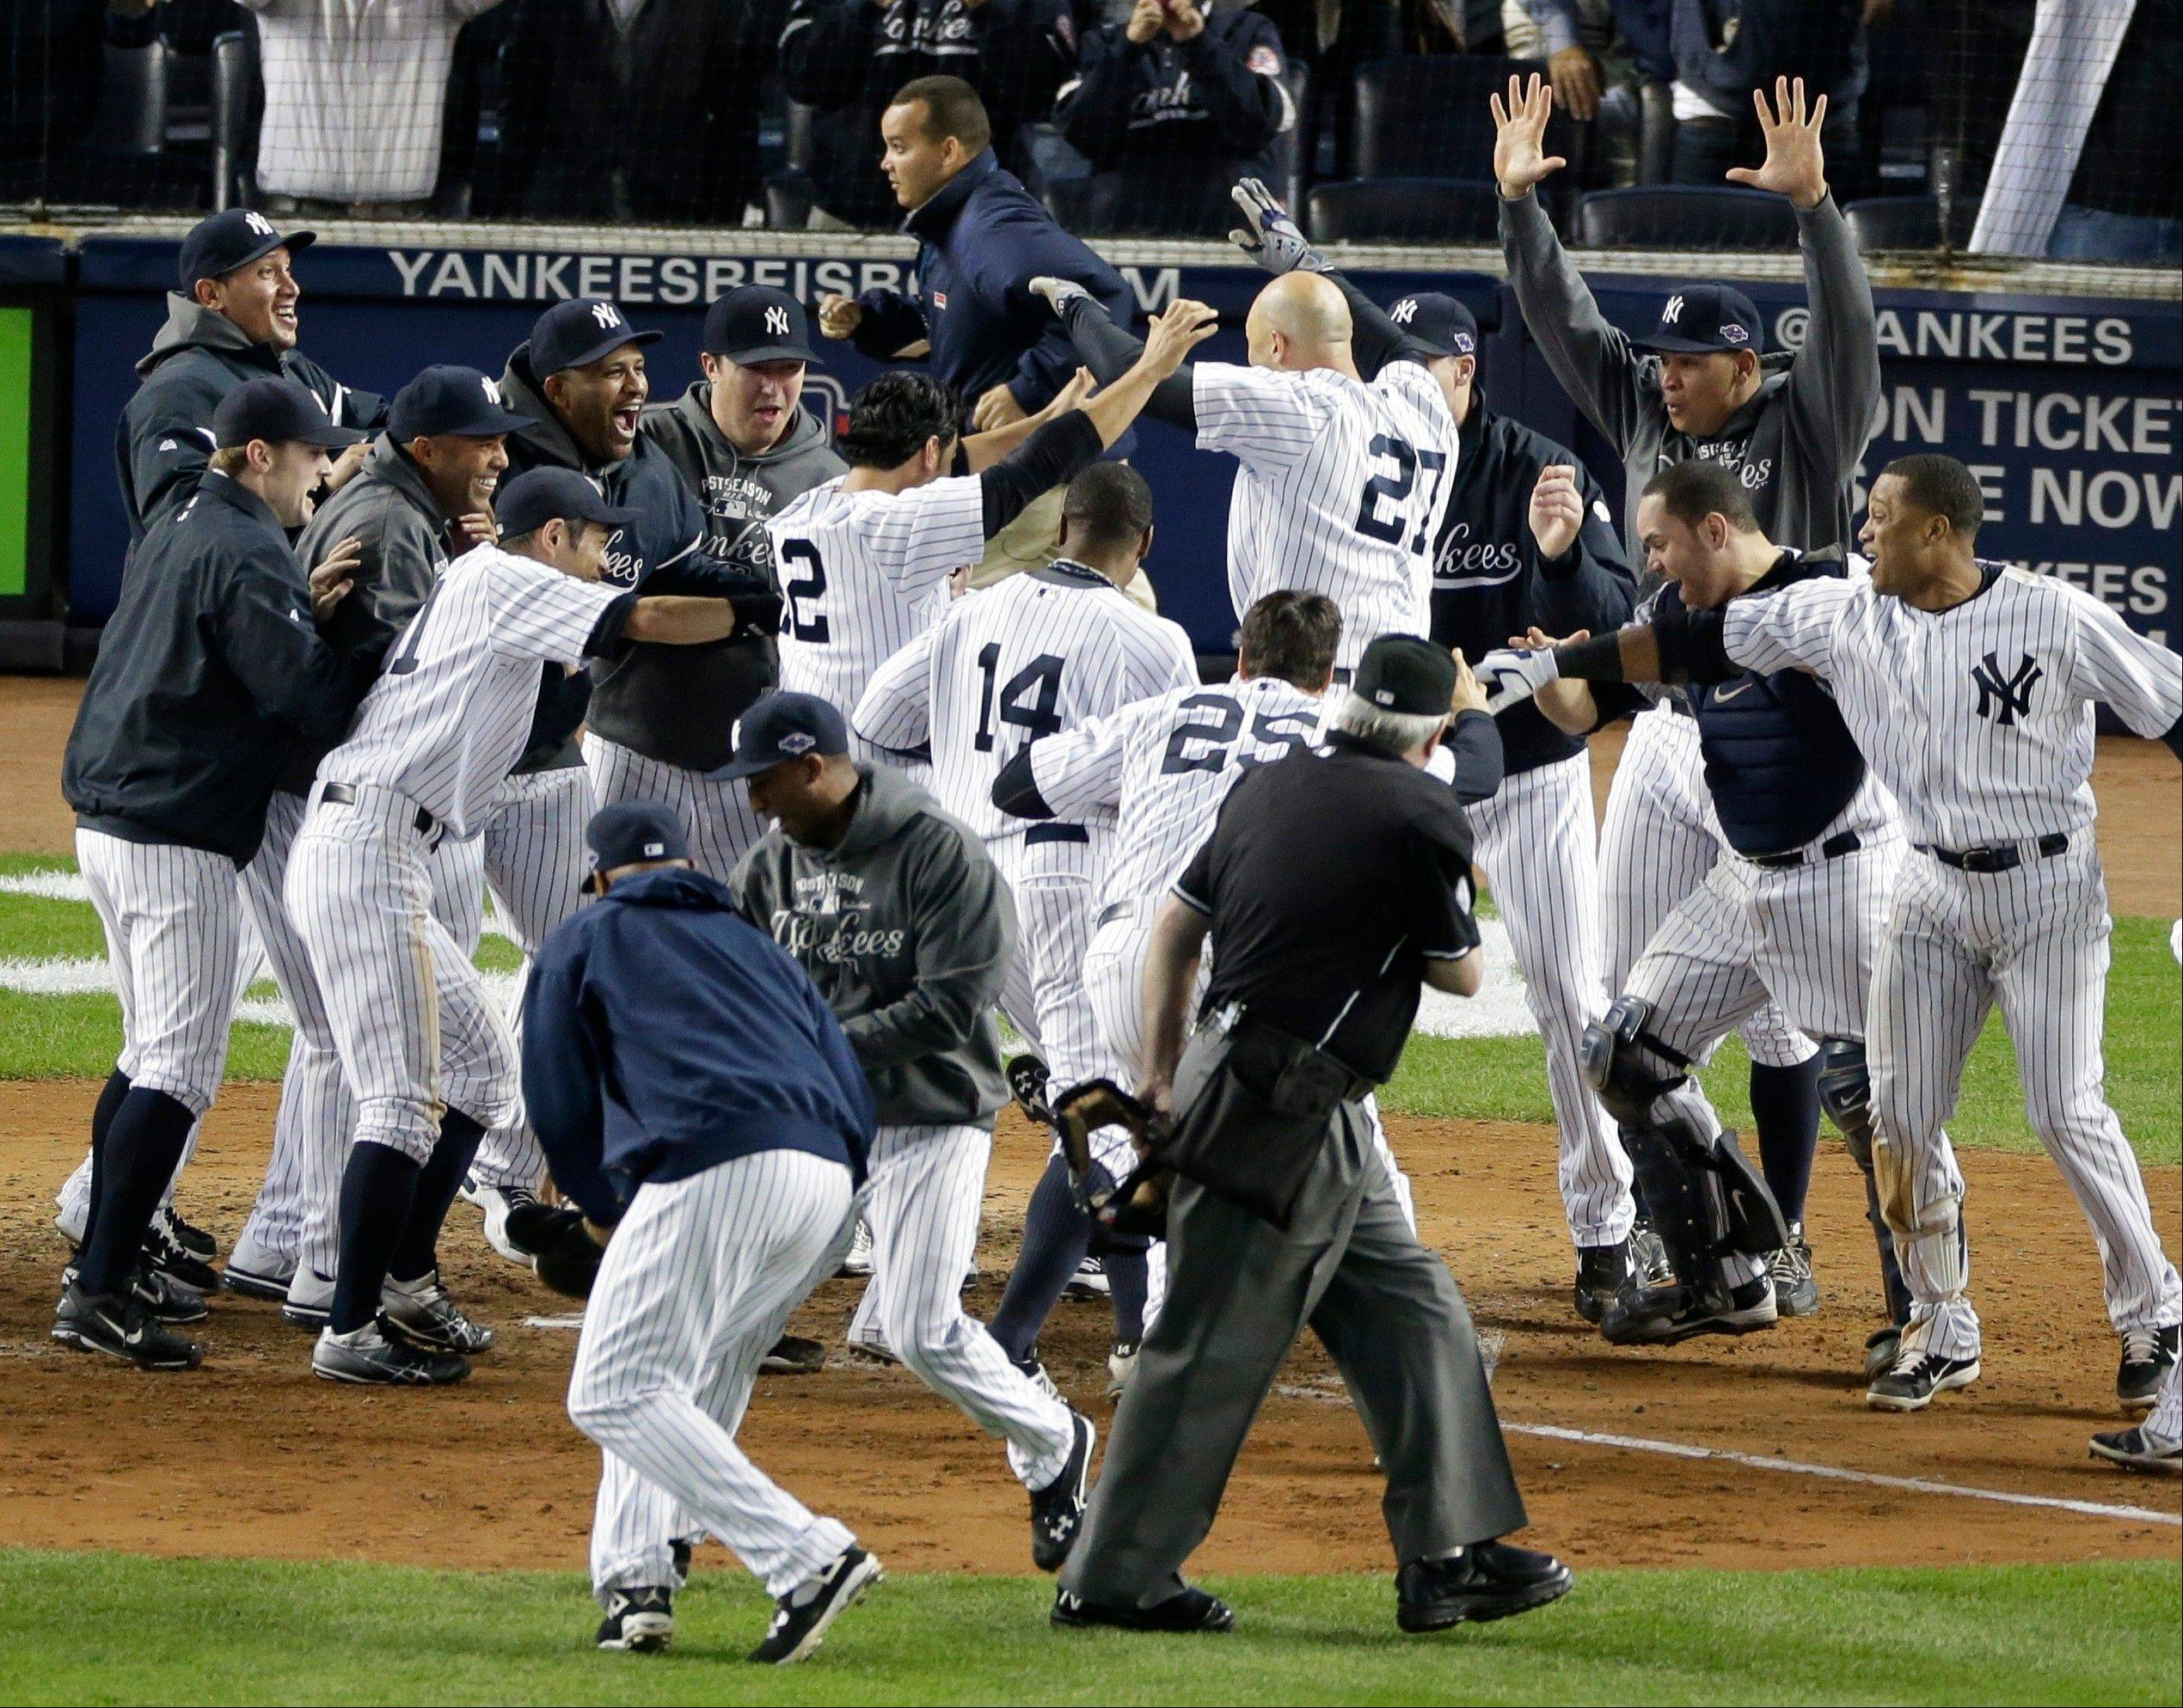 New York Yankees' Raul Ibanez (27) is mobbed by teammates at home plate Wednesday after he hit the game-winning home run in the 12th inning in Game 3 of the American League division baseball series. The Yankees beat the Baltimore Orioles 3-2.